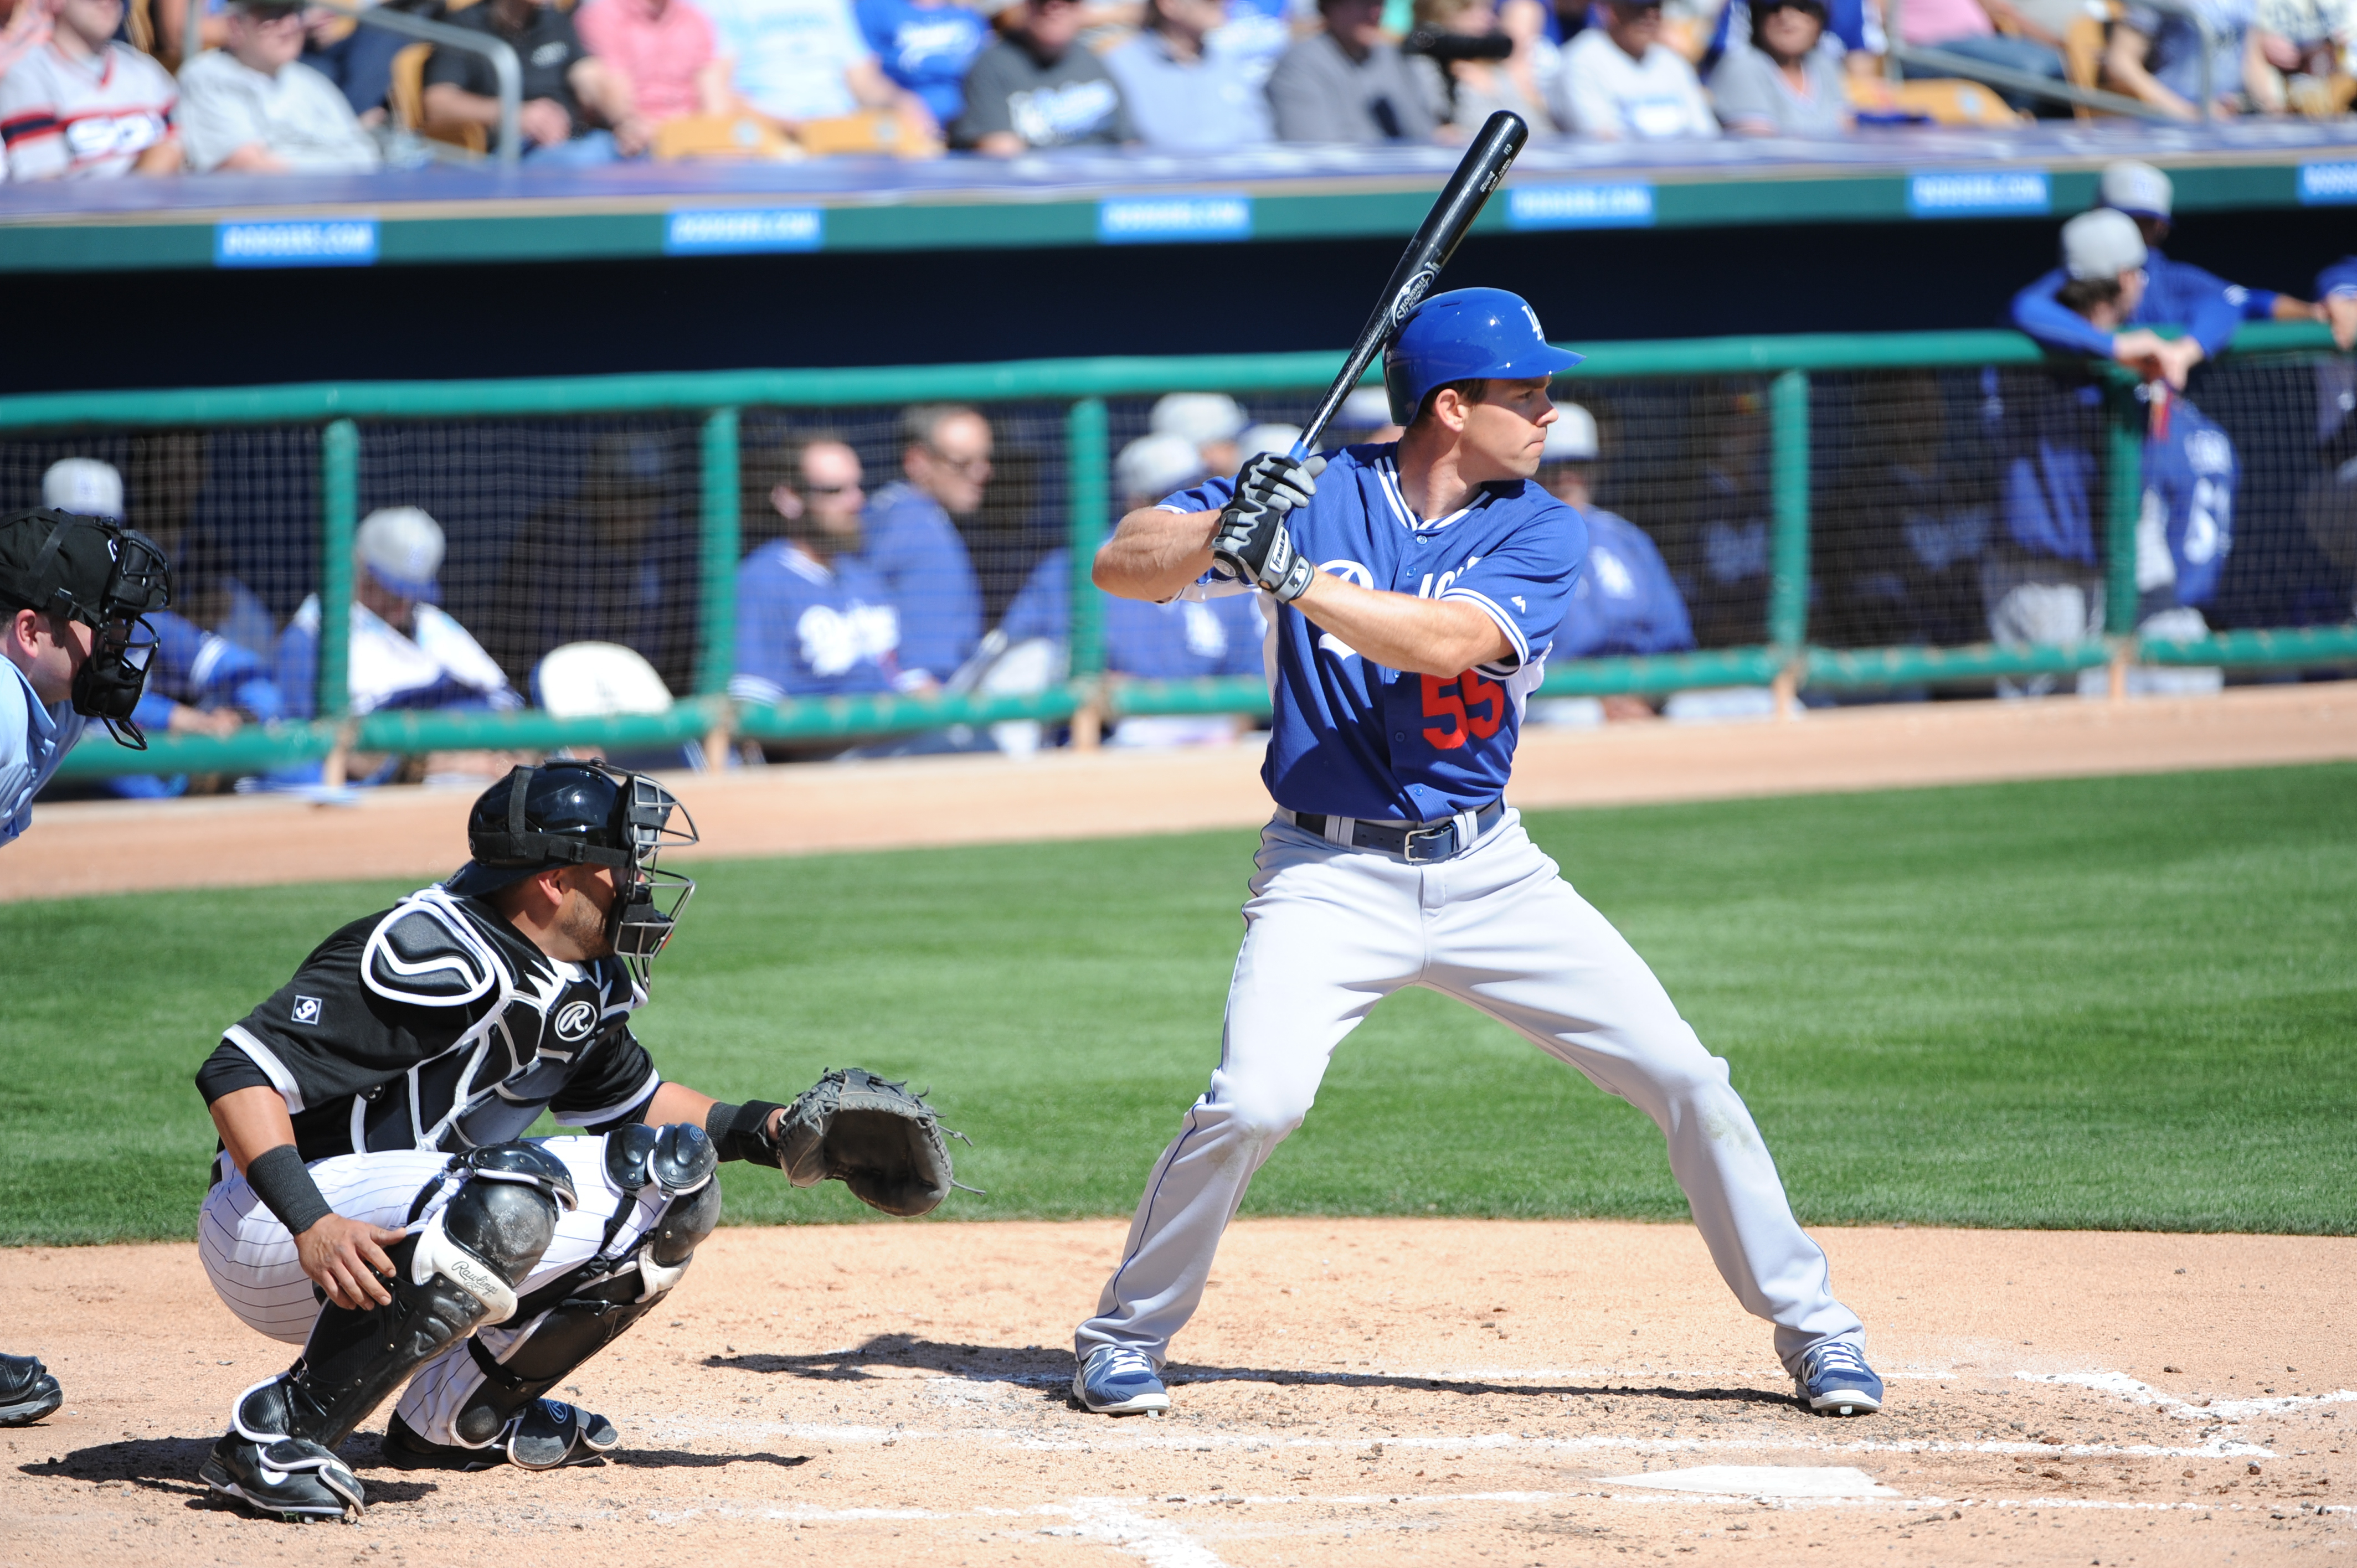 Matt Carson was one of two players sent to minor league camp by the Dodgers on Saturday.